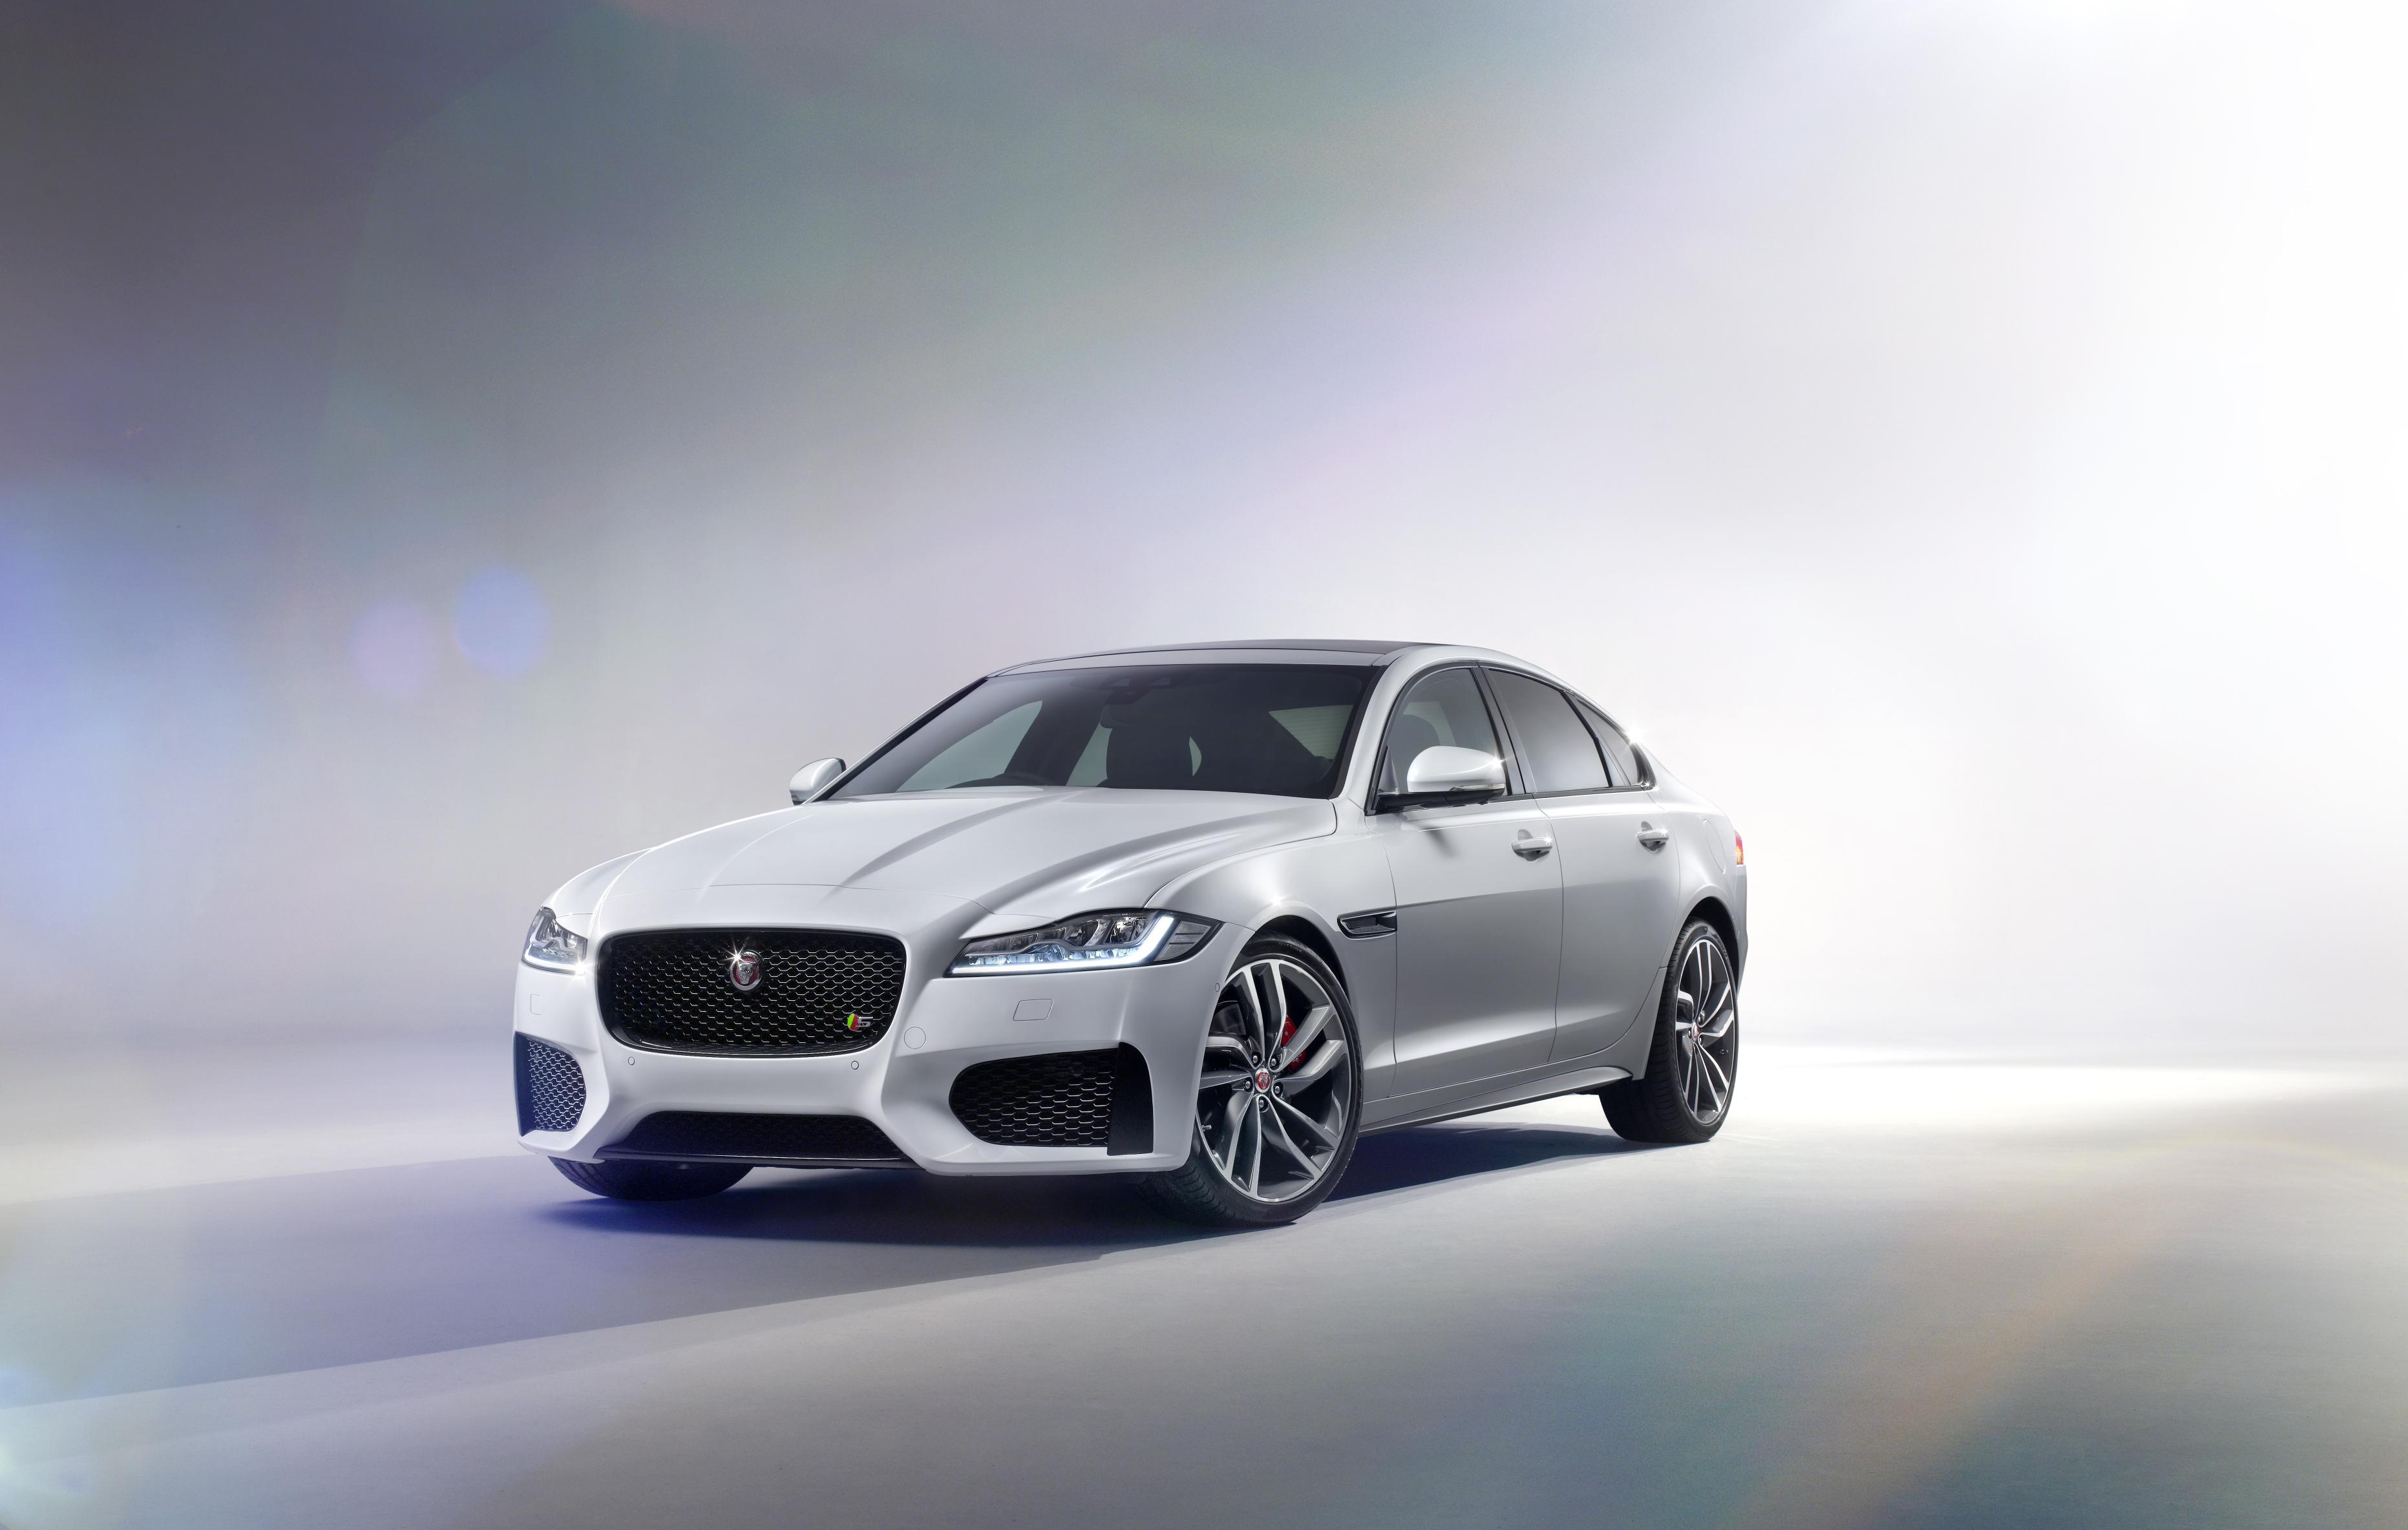 canada awd my lease kia xf for vancouver silver in stinger jaguar sale automatic ceramic forum a new